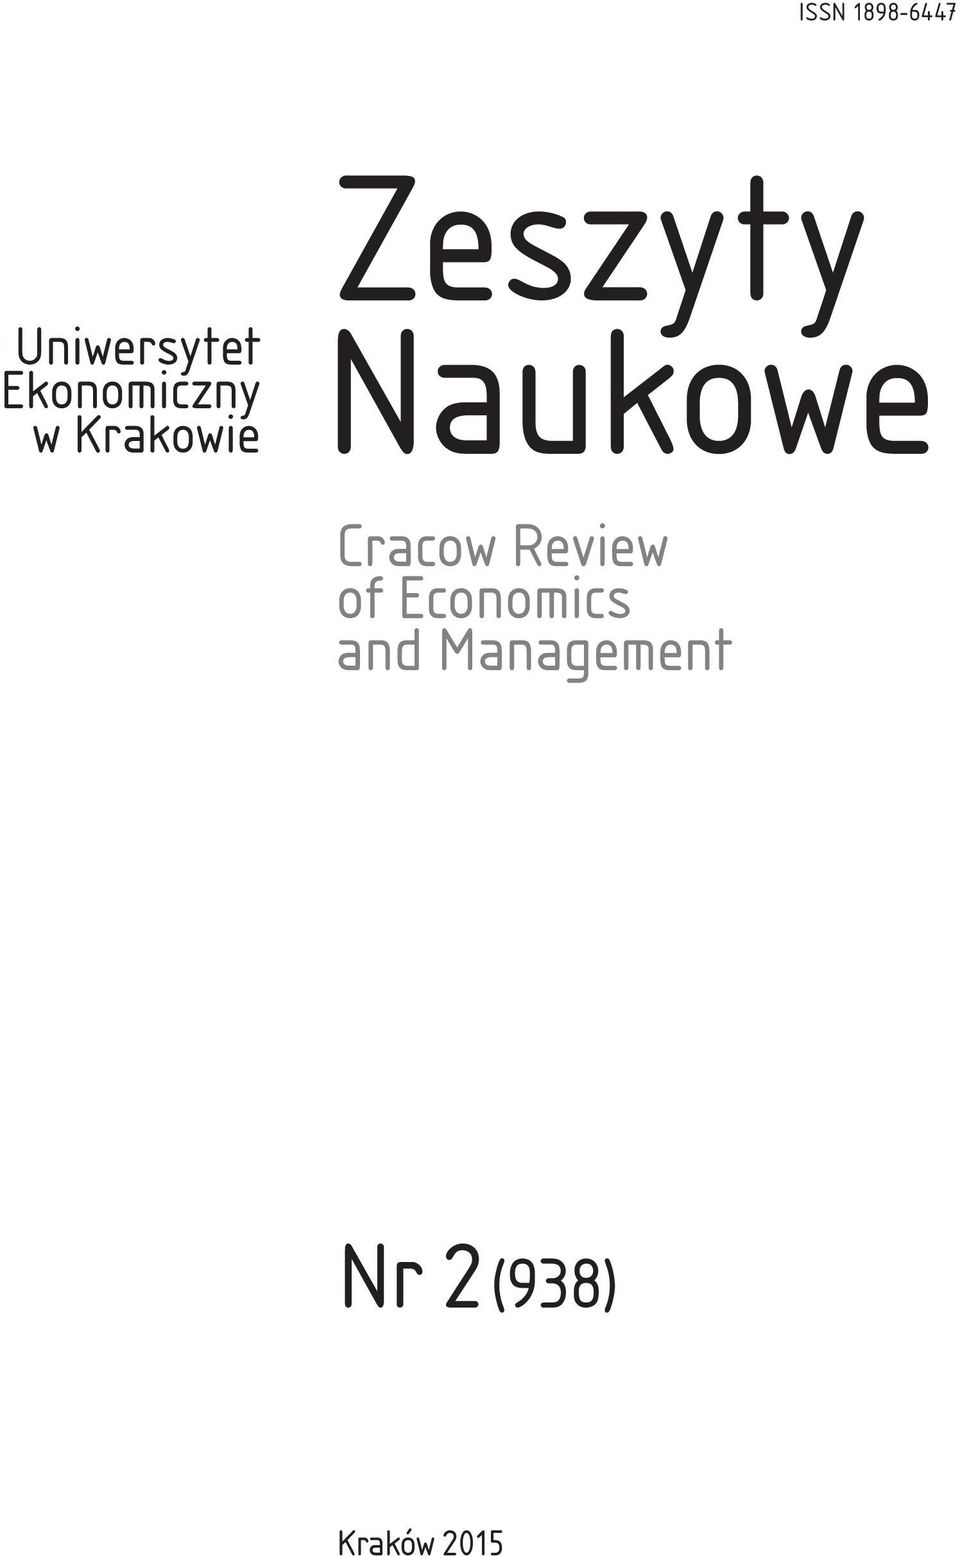 Naukowe Cracow Review of